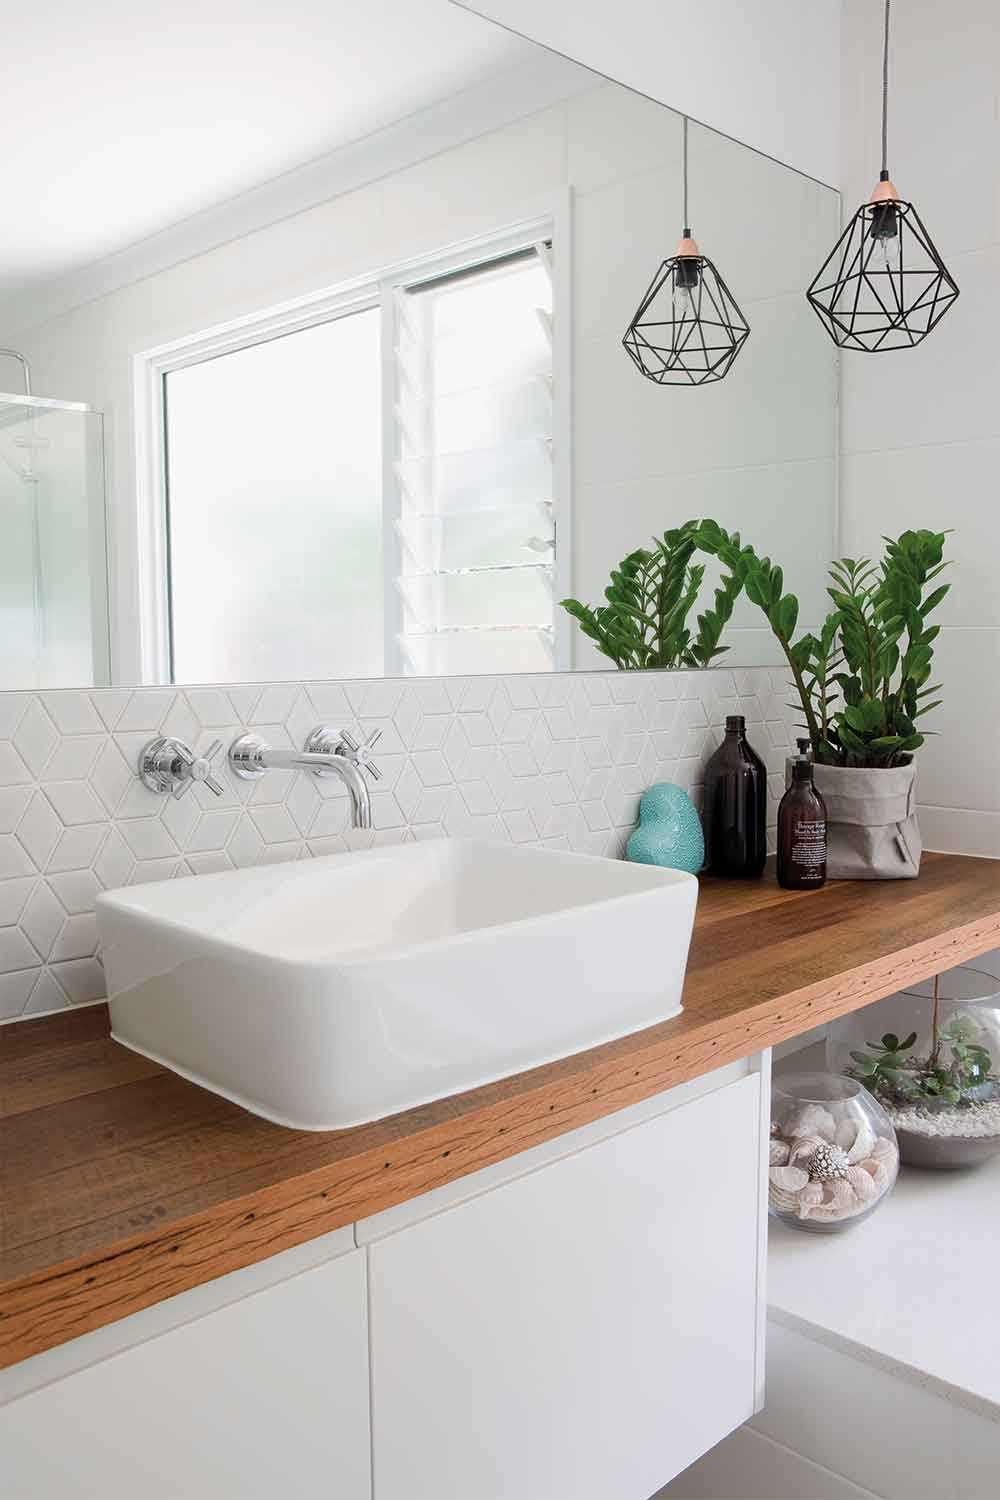 Bathroom Plants 7 Indoor Plants That Thrive In Bathrooms Home Beautiful Magazine Australia